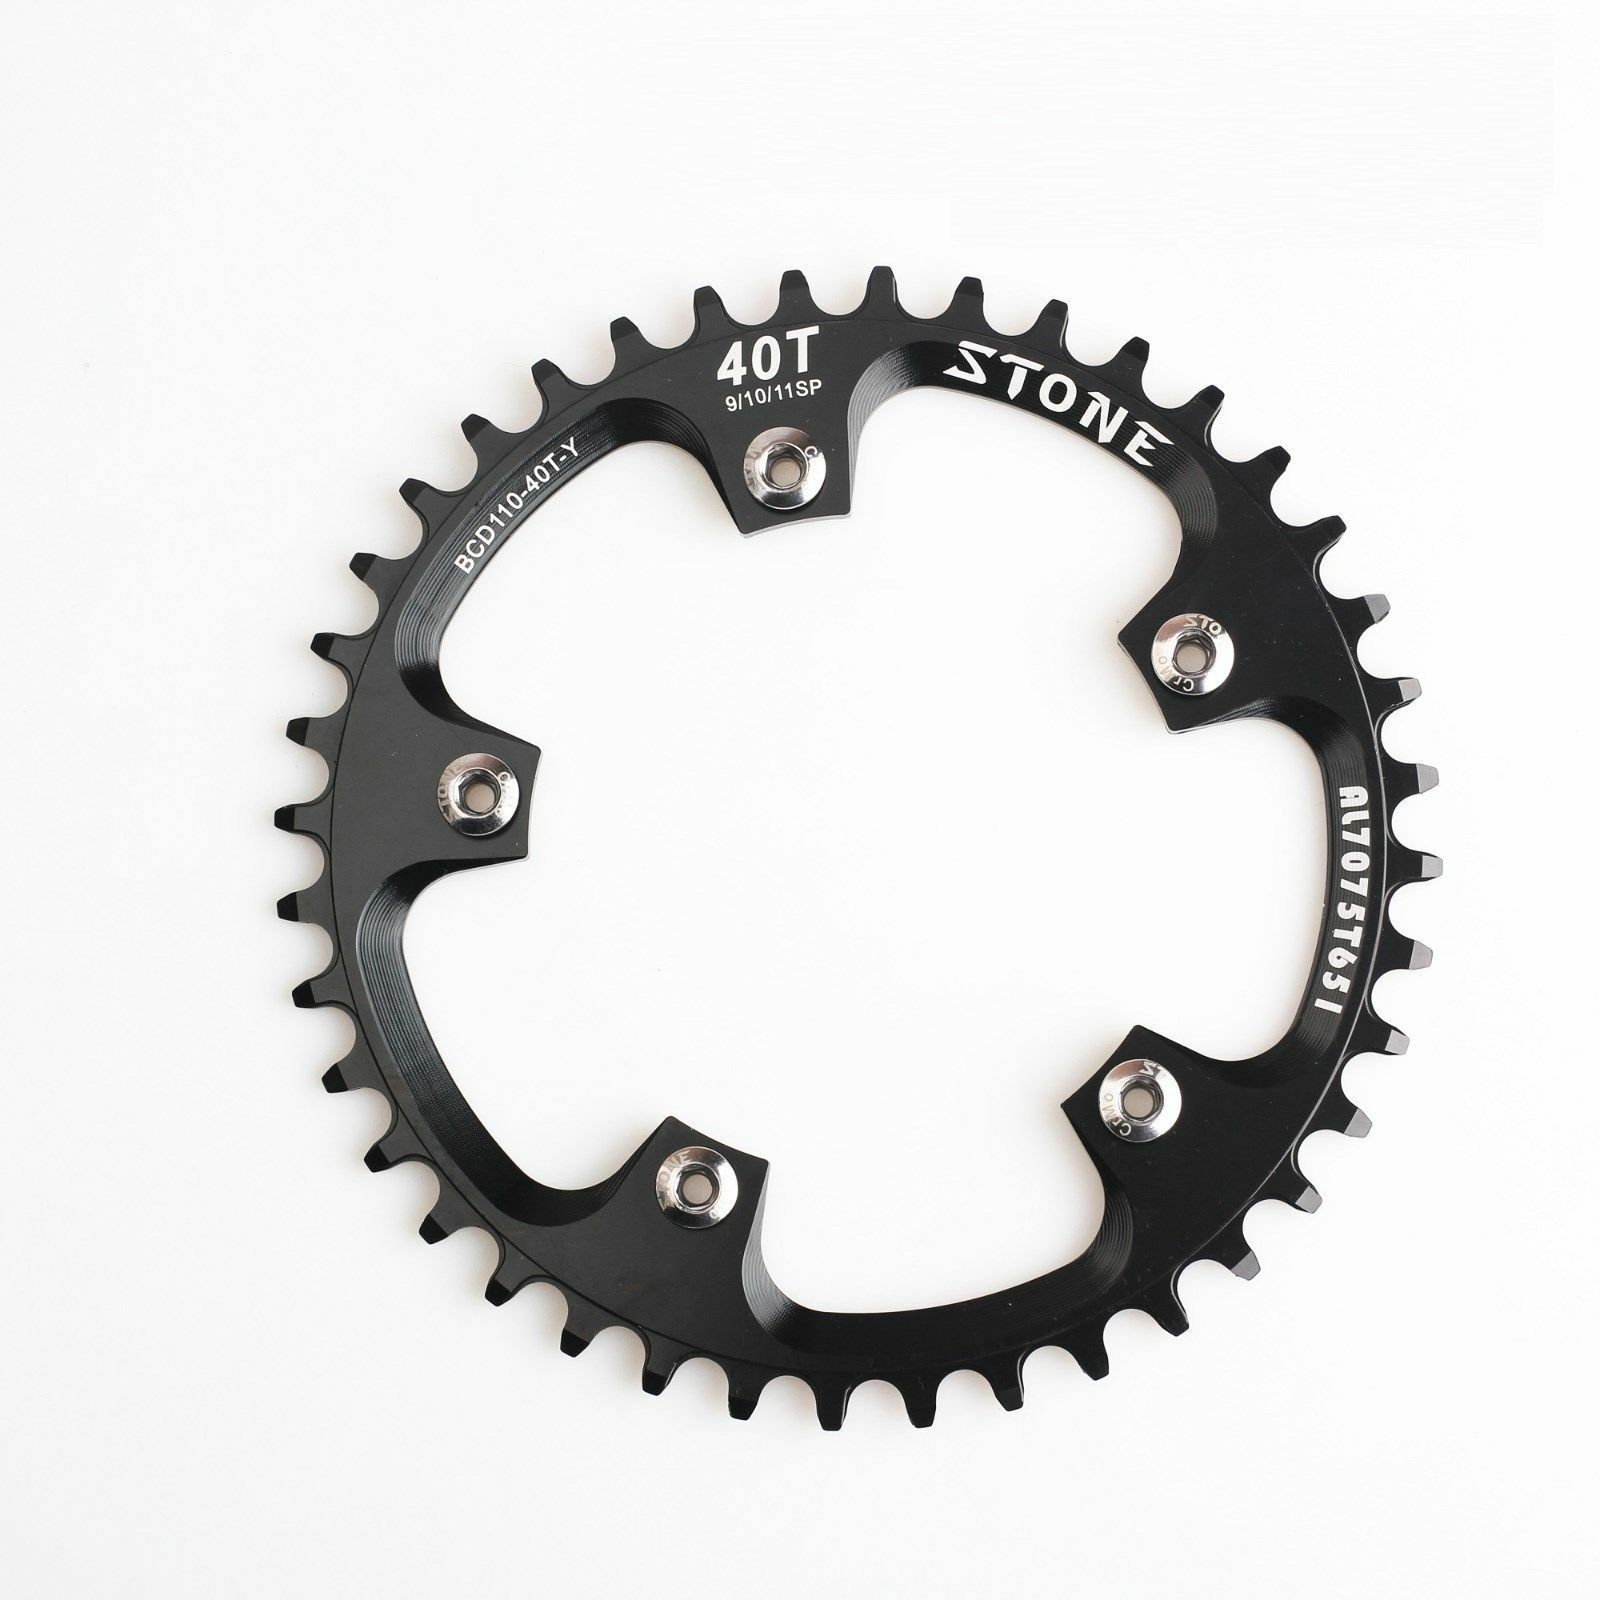 BCD110 Single Chainring 5 bolts Narrow Wide Circle 34T 36t 38t 40T Road bike